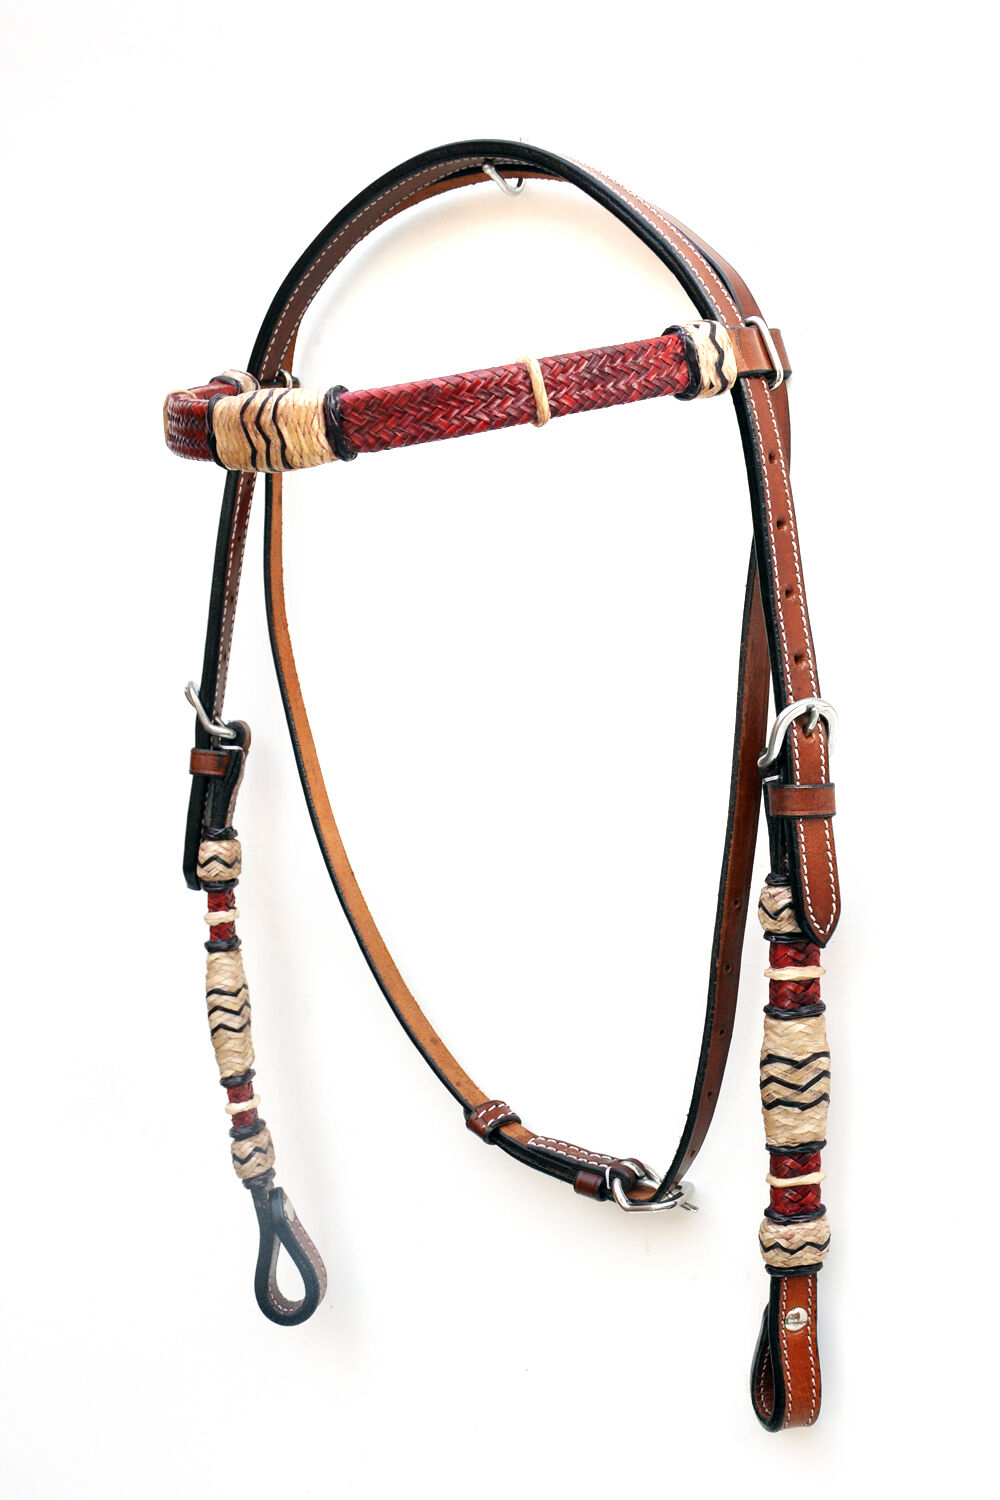 Western Marronee Rawlhide Set of Head Sttutti  Breast collar Reins Spur e Curb Strap